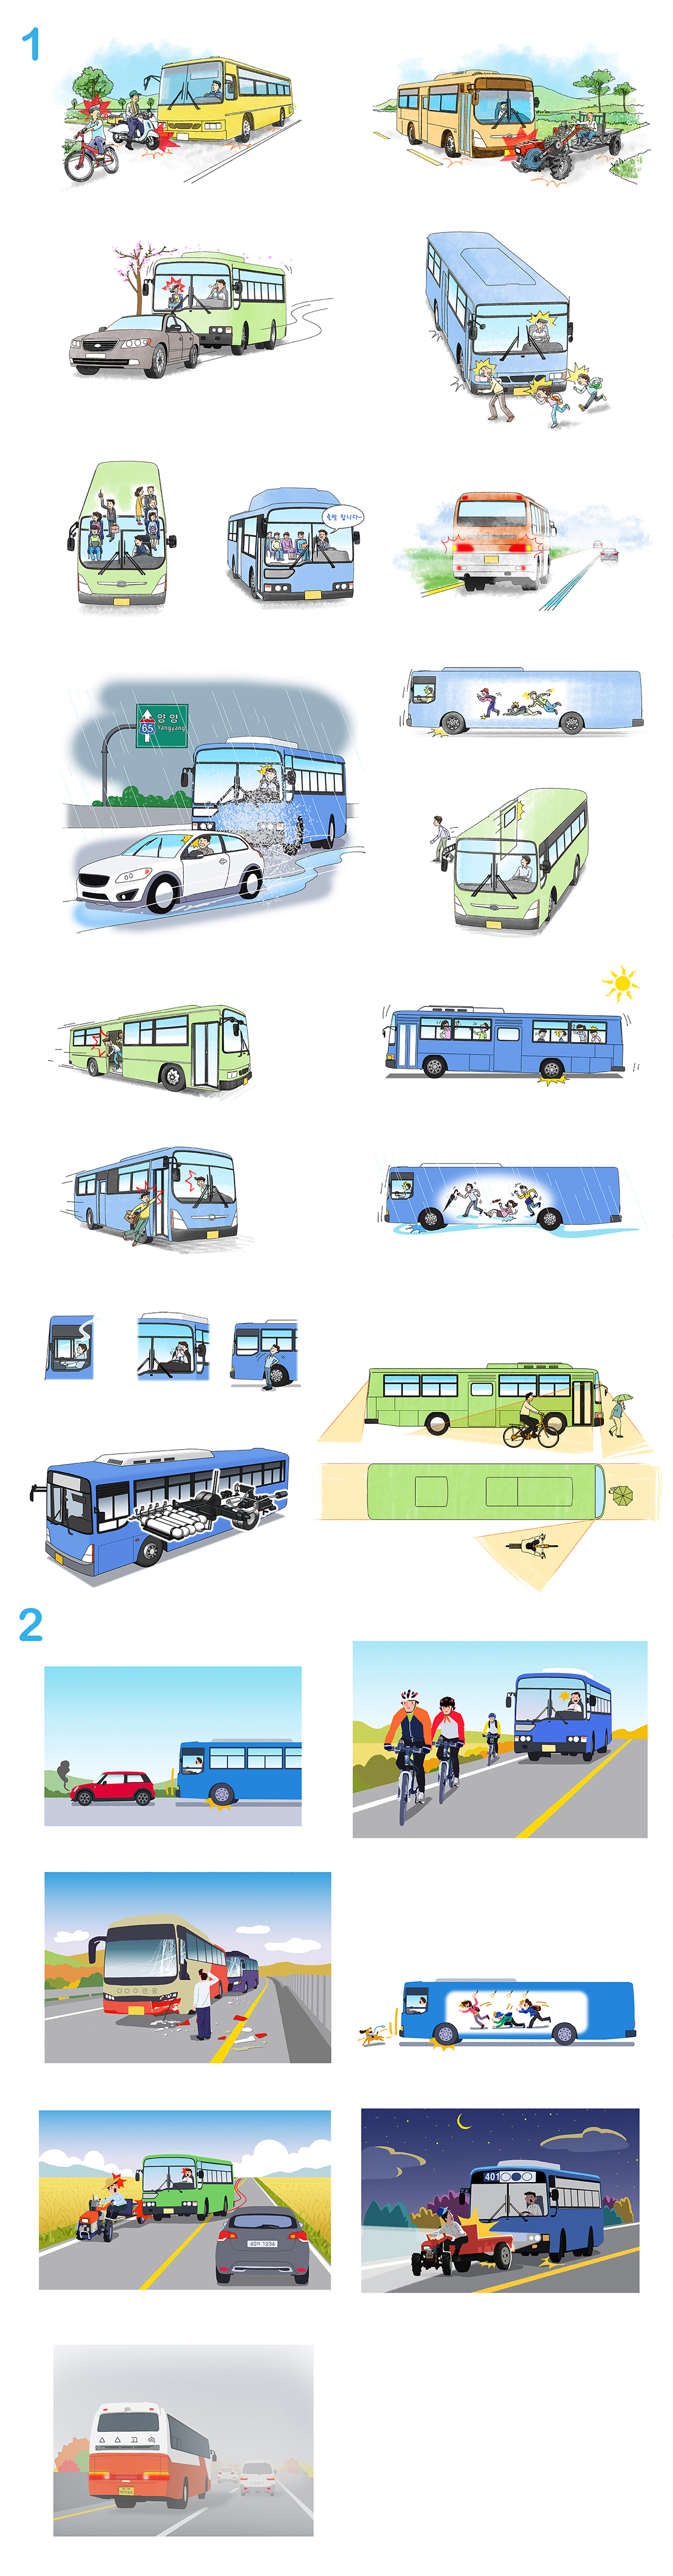 illustman-081_Various style illustration-02